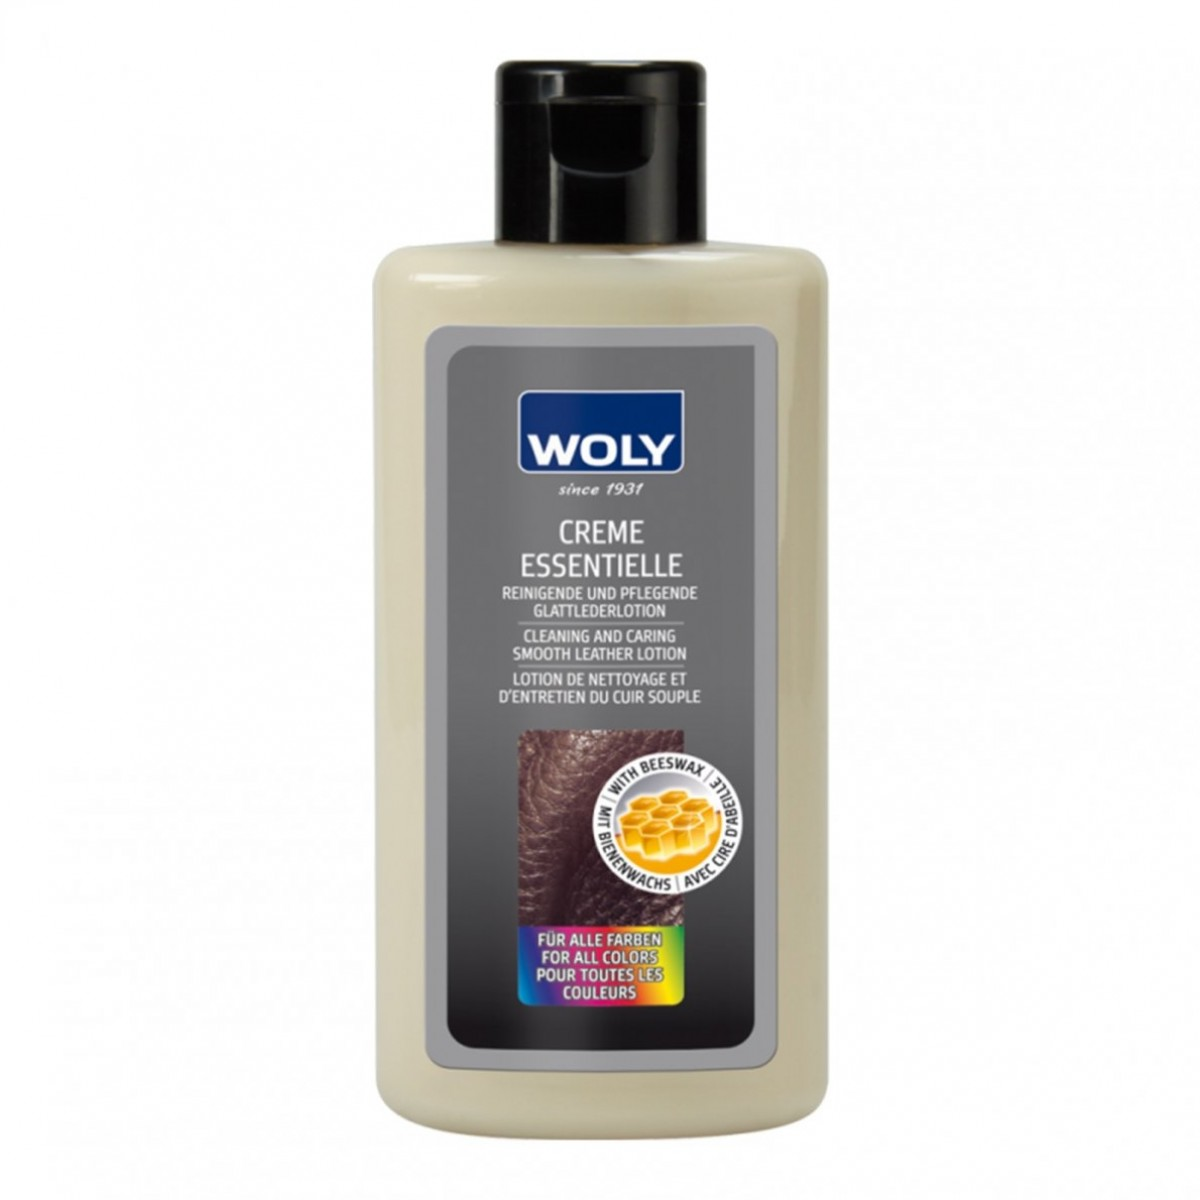 Woly Creme Essentielle Lotion-31